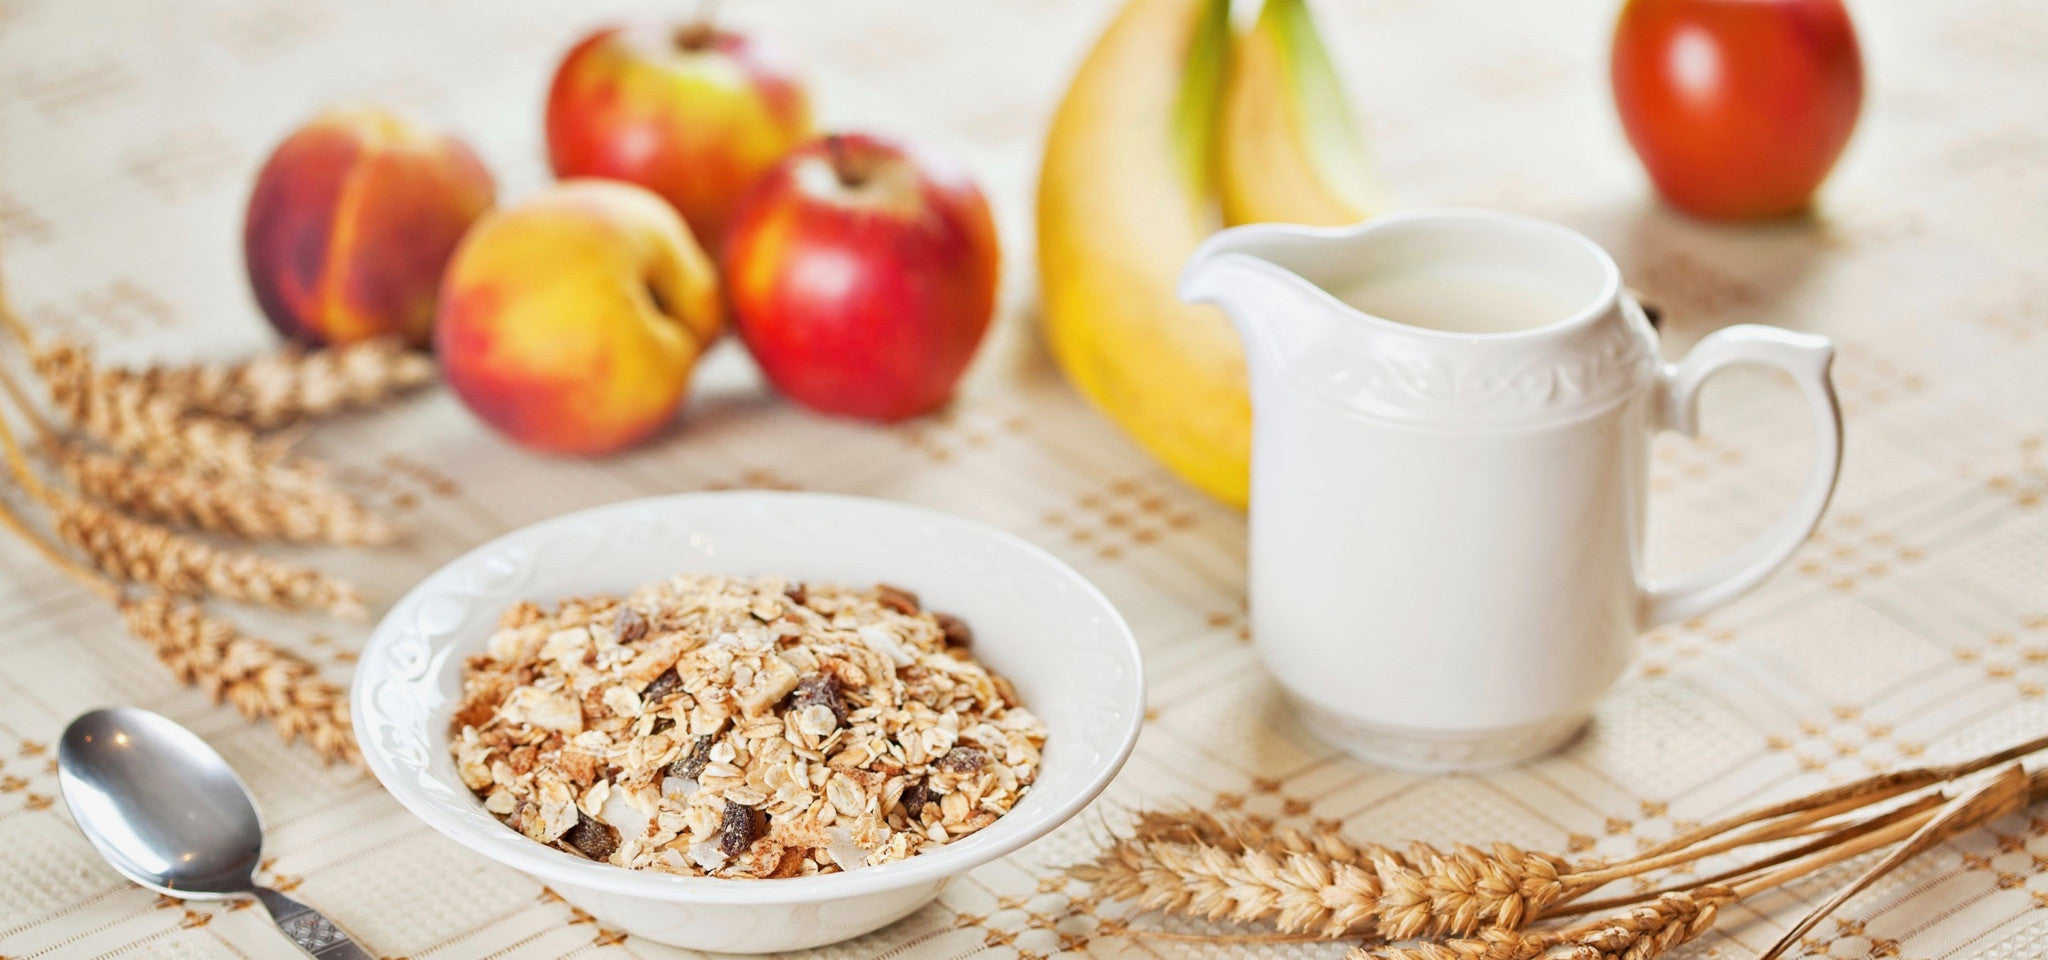 Breakfast is Important!